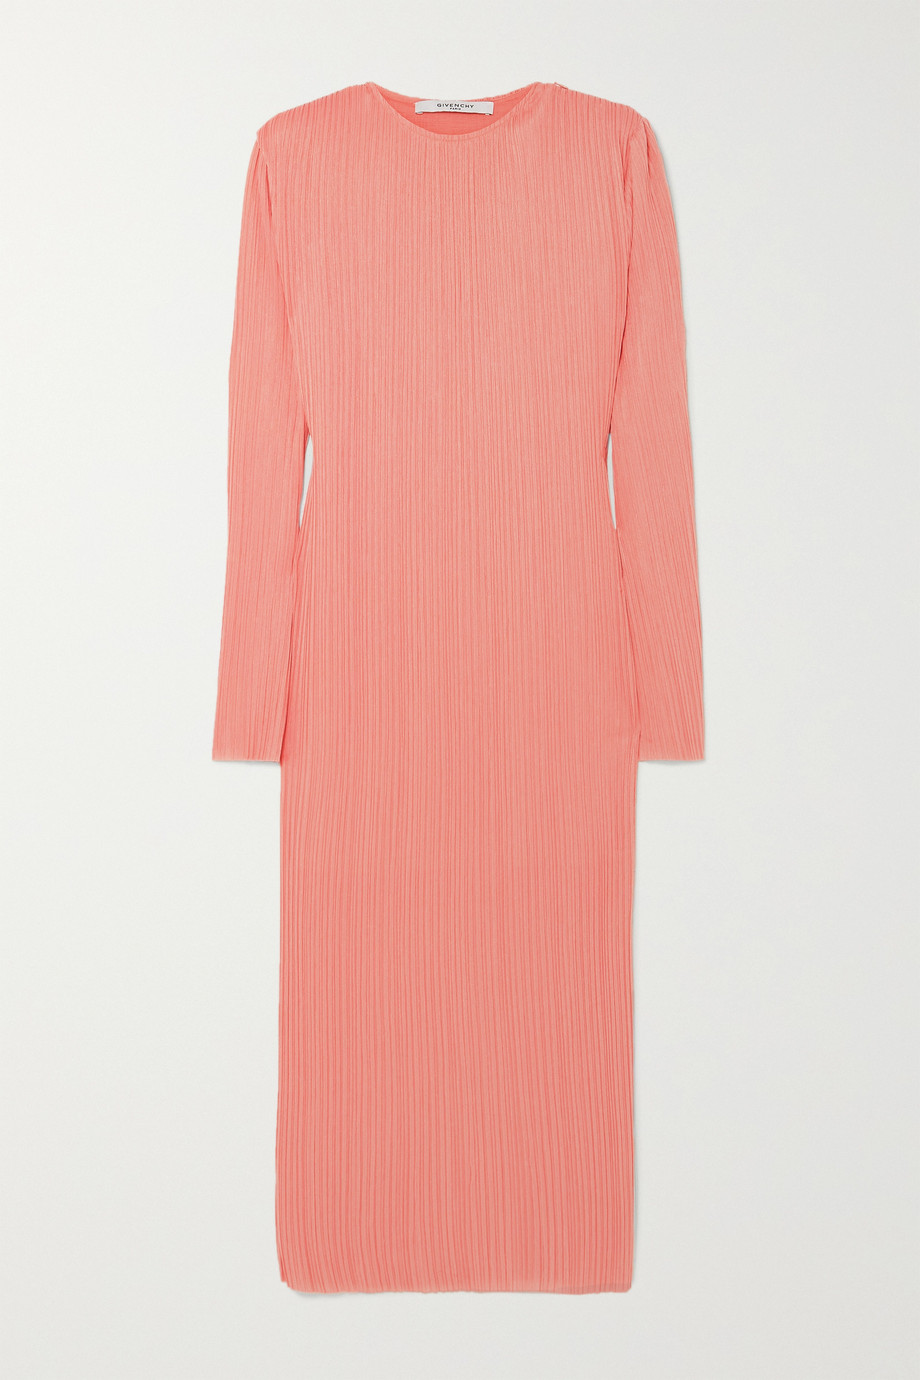 Givenchy Plissé-crepe midi dress